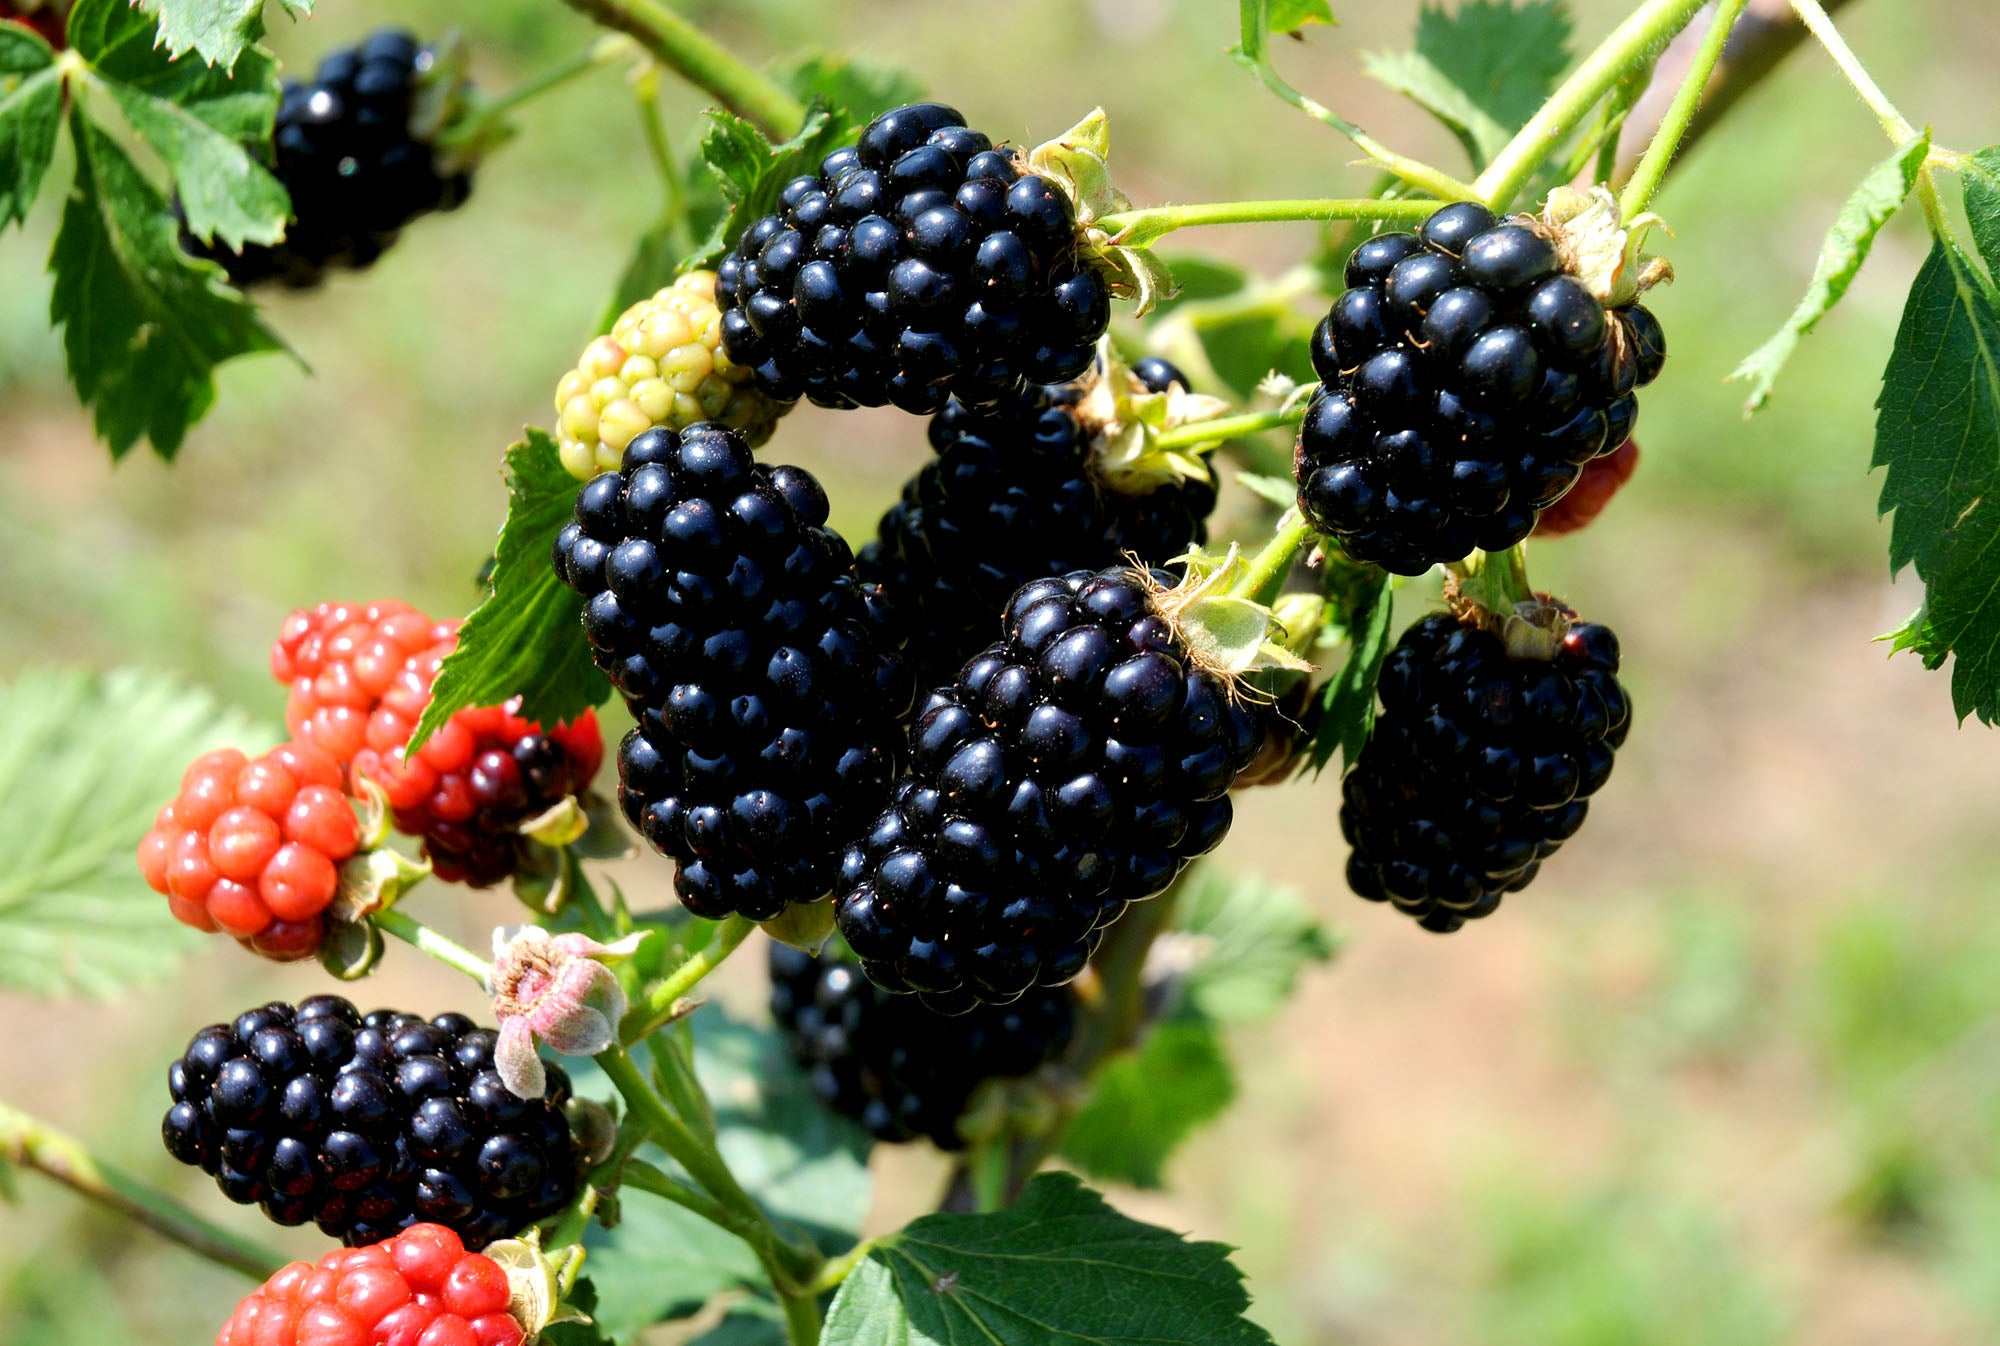 PRIME ARK FREEDOM Blackberry, Medium to Large Berries with Excellent Flavor, early and Heavy Producer with Erect Thorny Canes